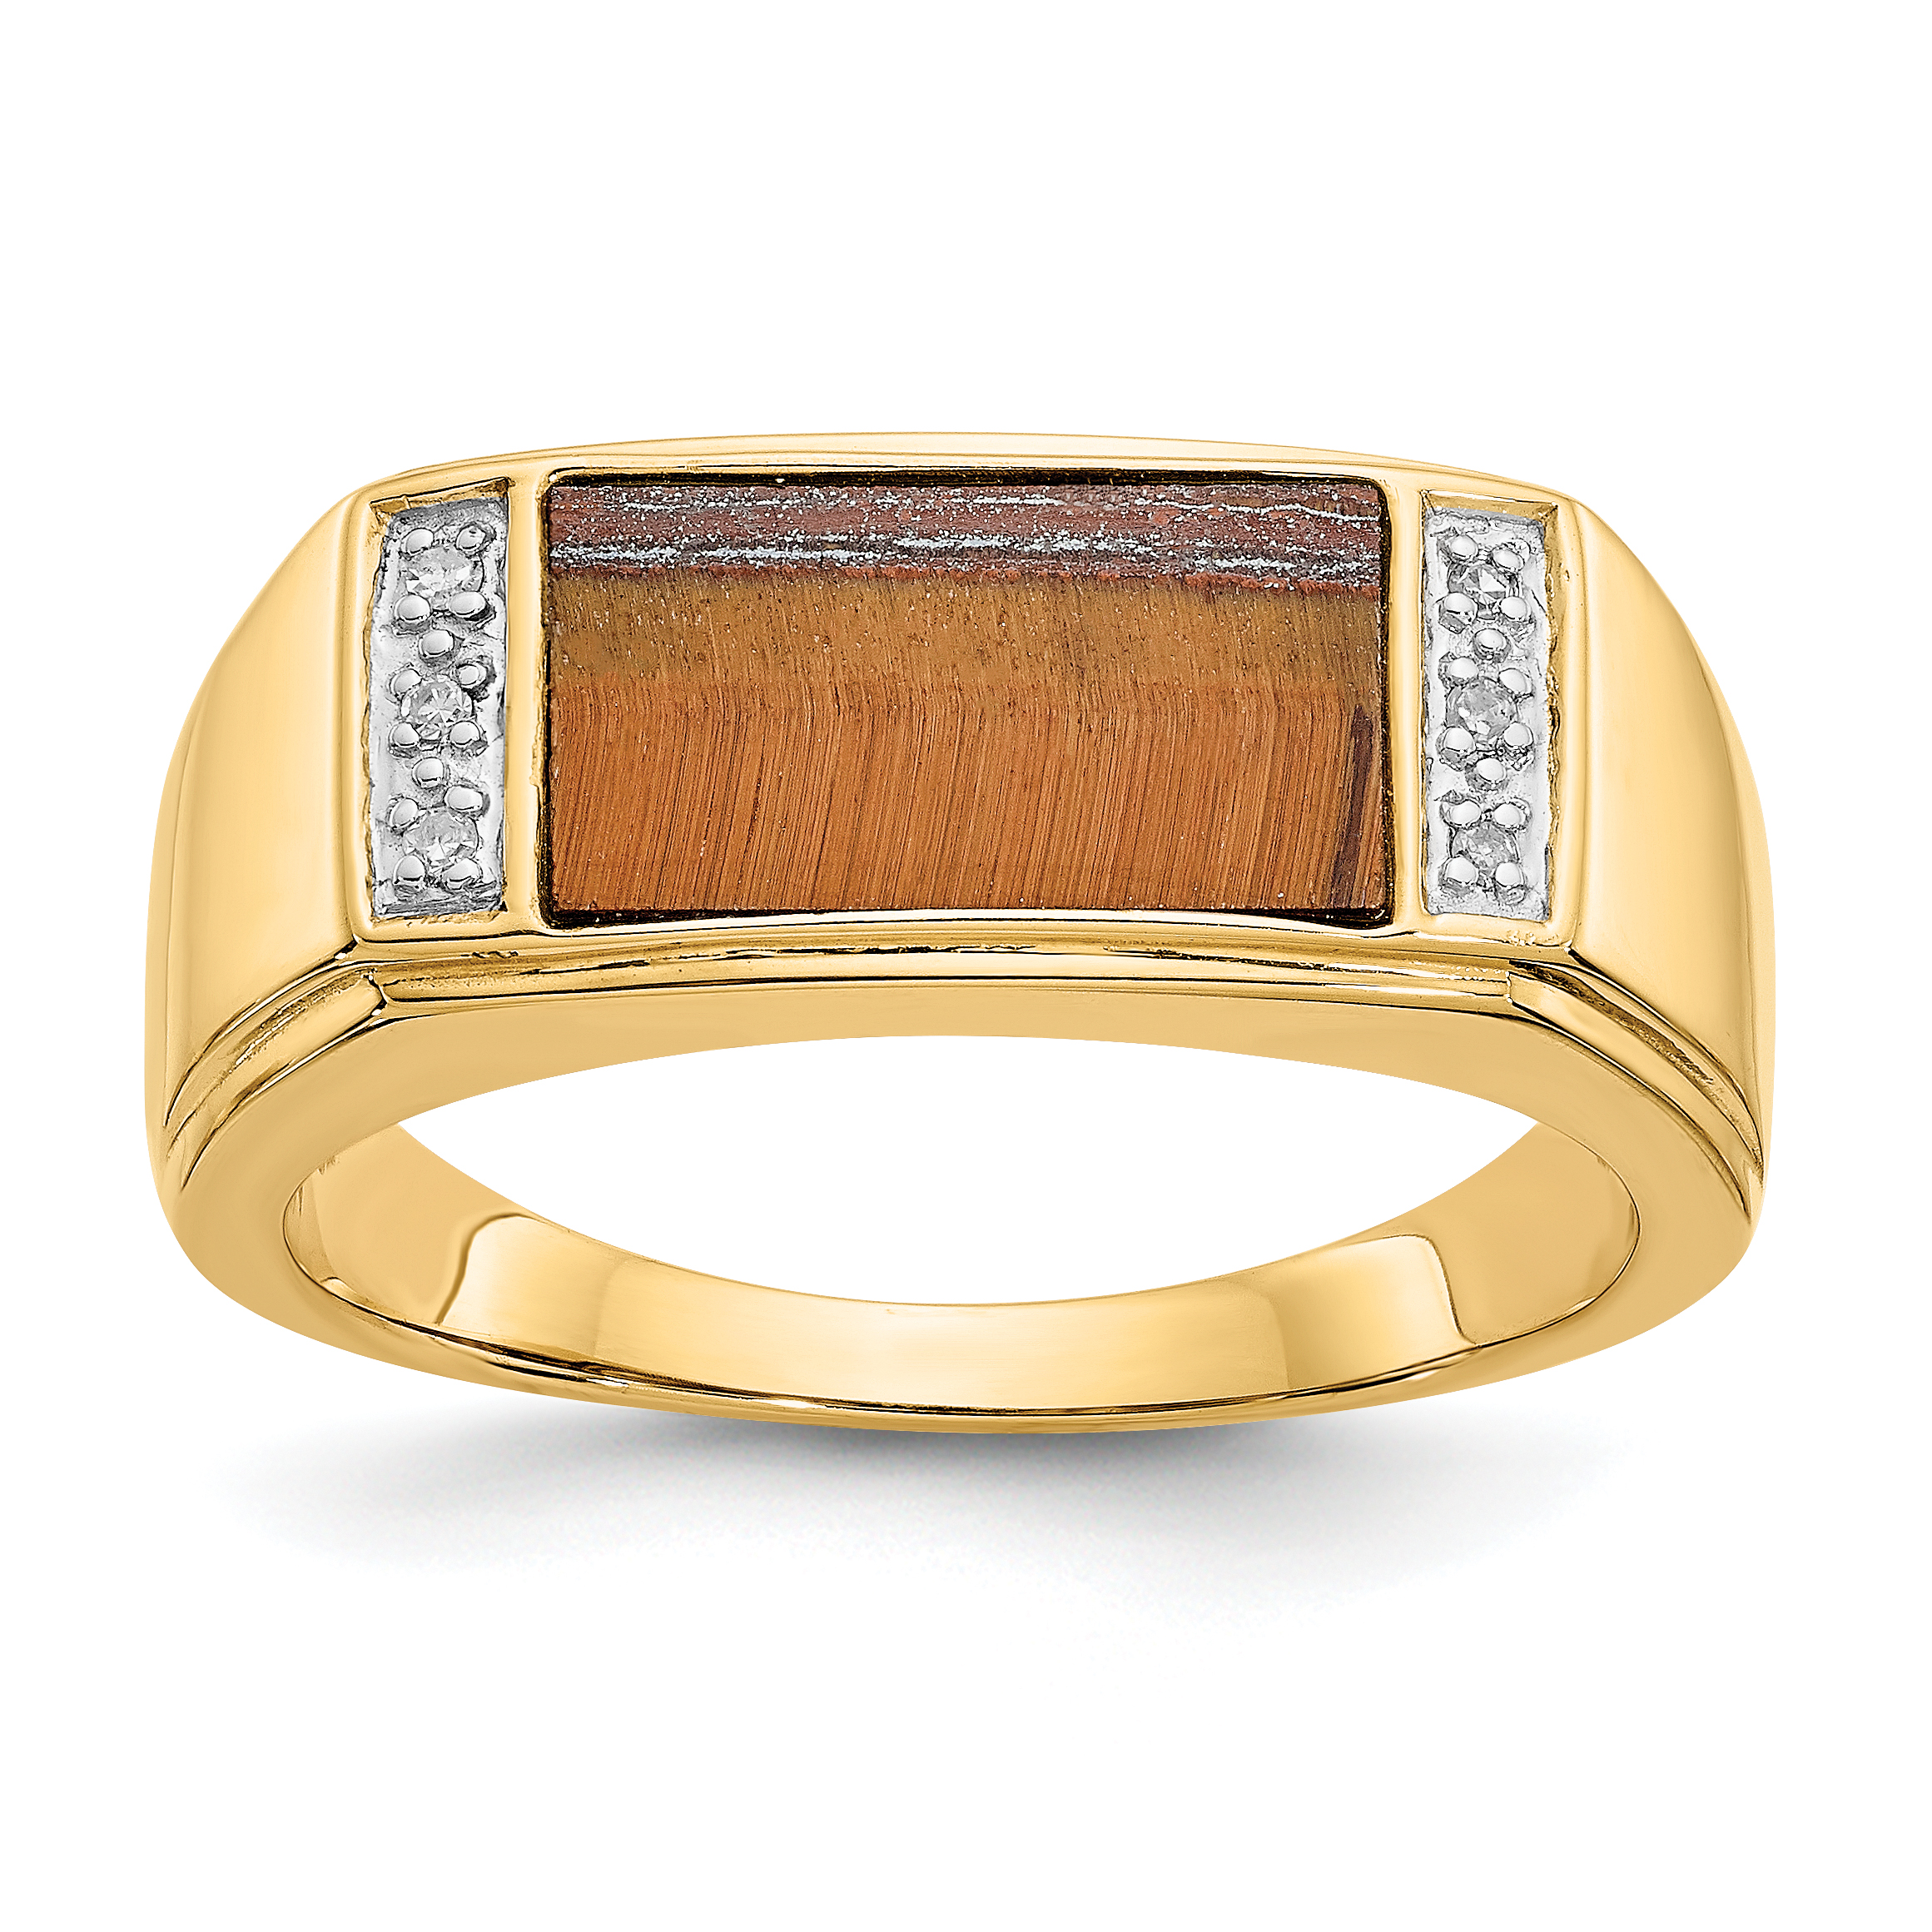 14k yellow gold tigers eye a diamond mens band ring size. Black Bedroom Furniture Sets. Home Design Ideas